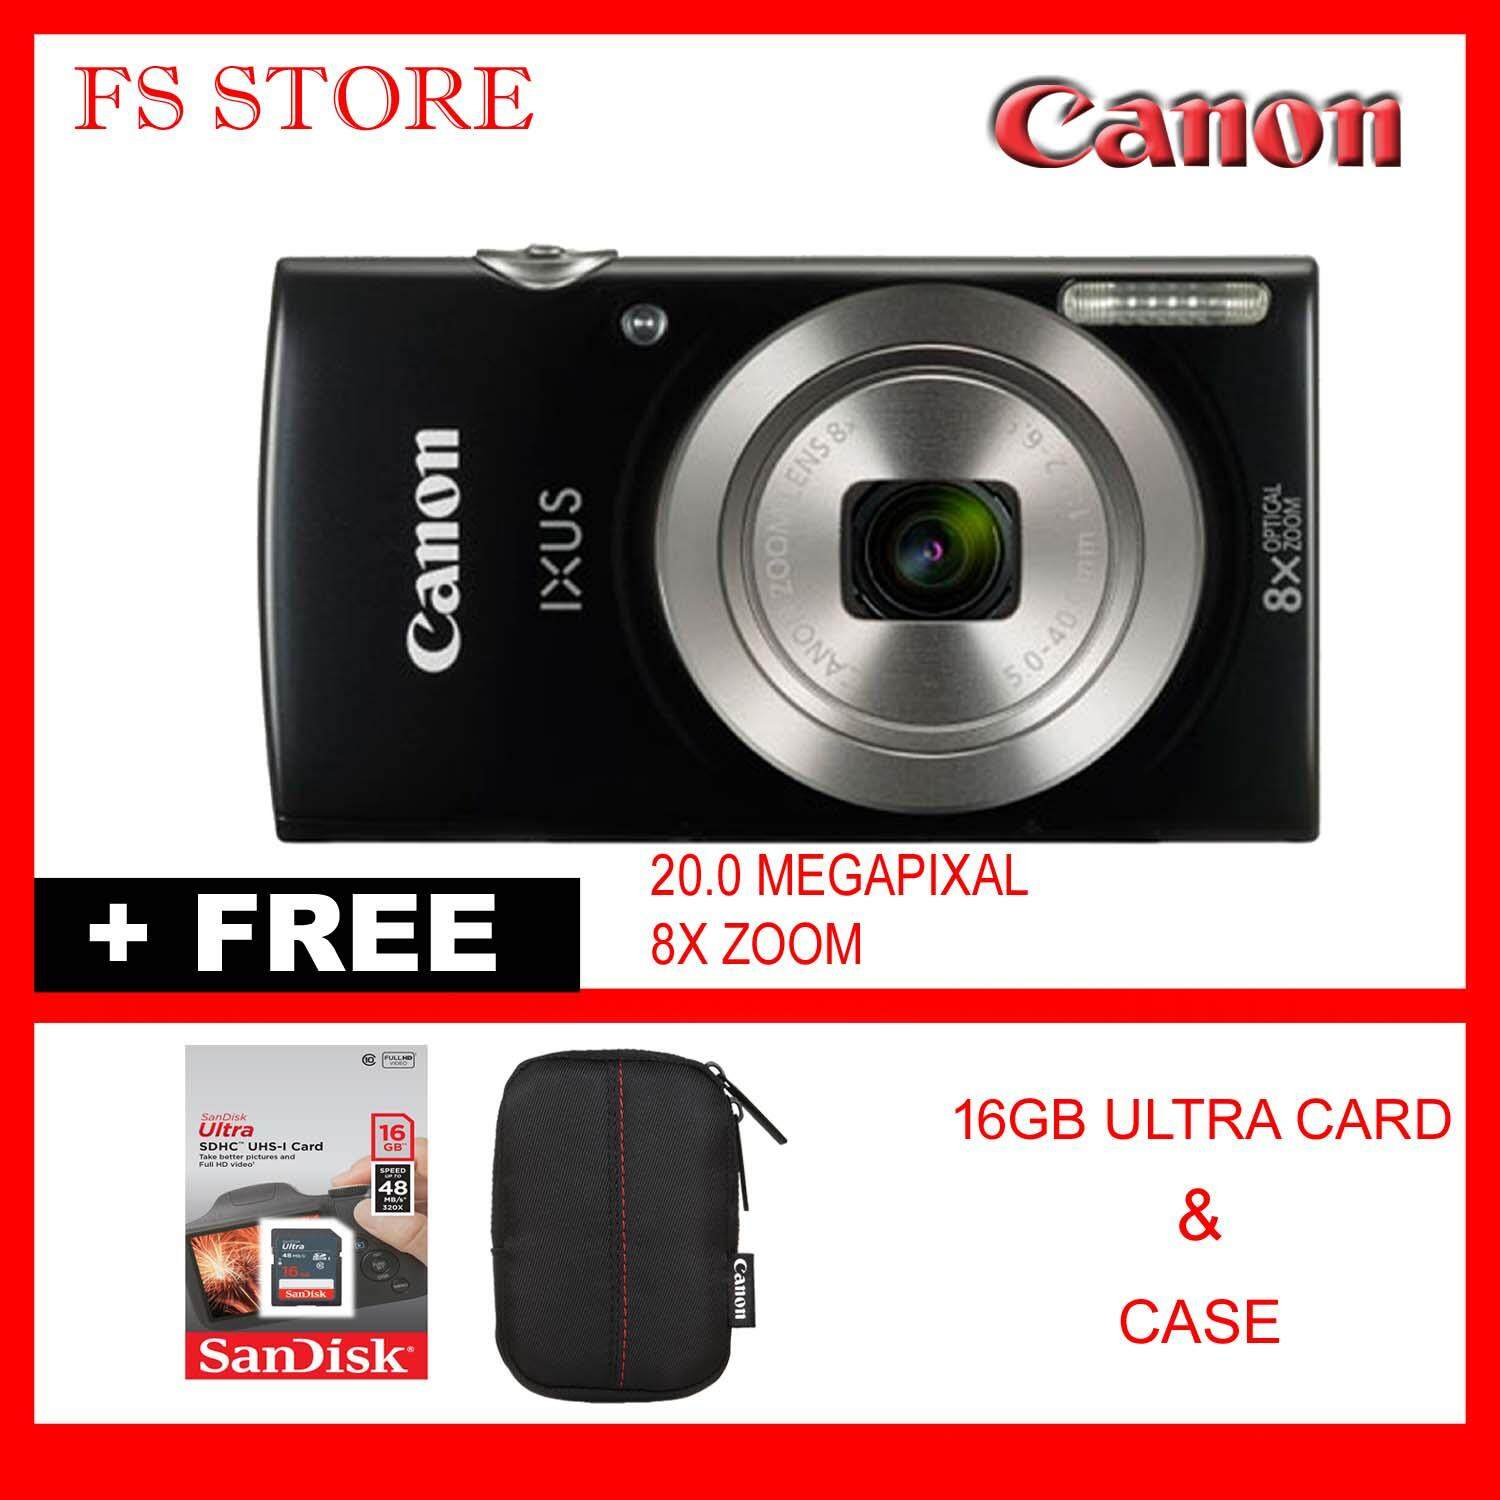 CANON IXUS 185 FREE 16GB ULTRA CARD CASE